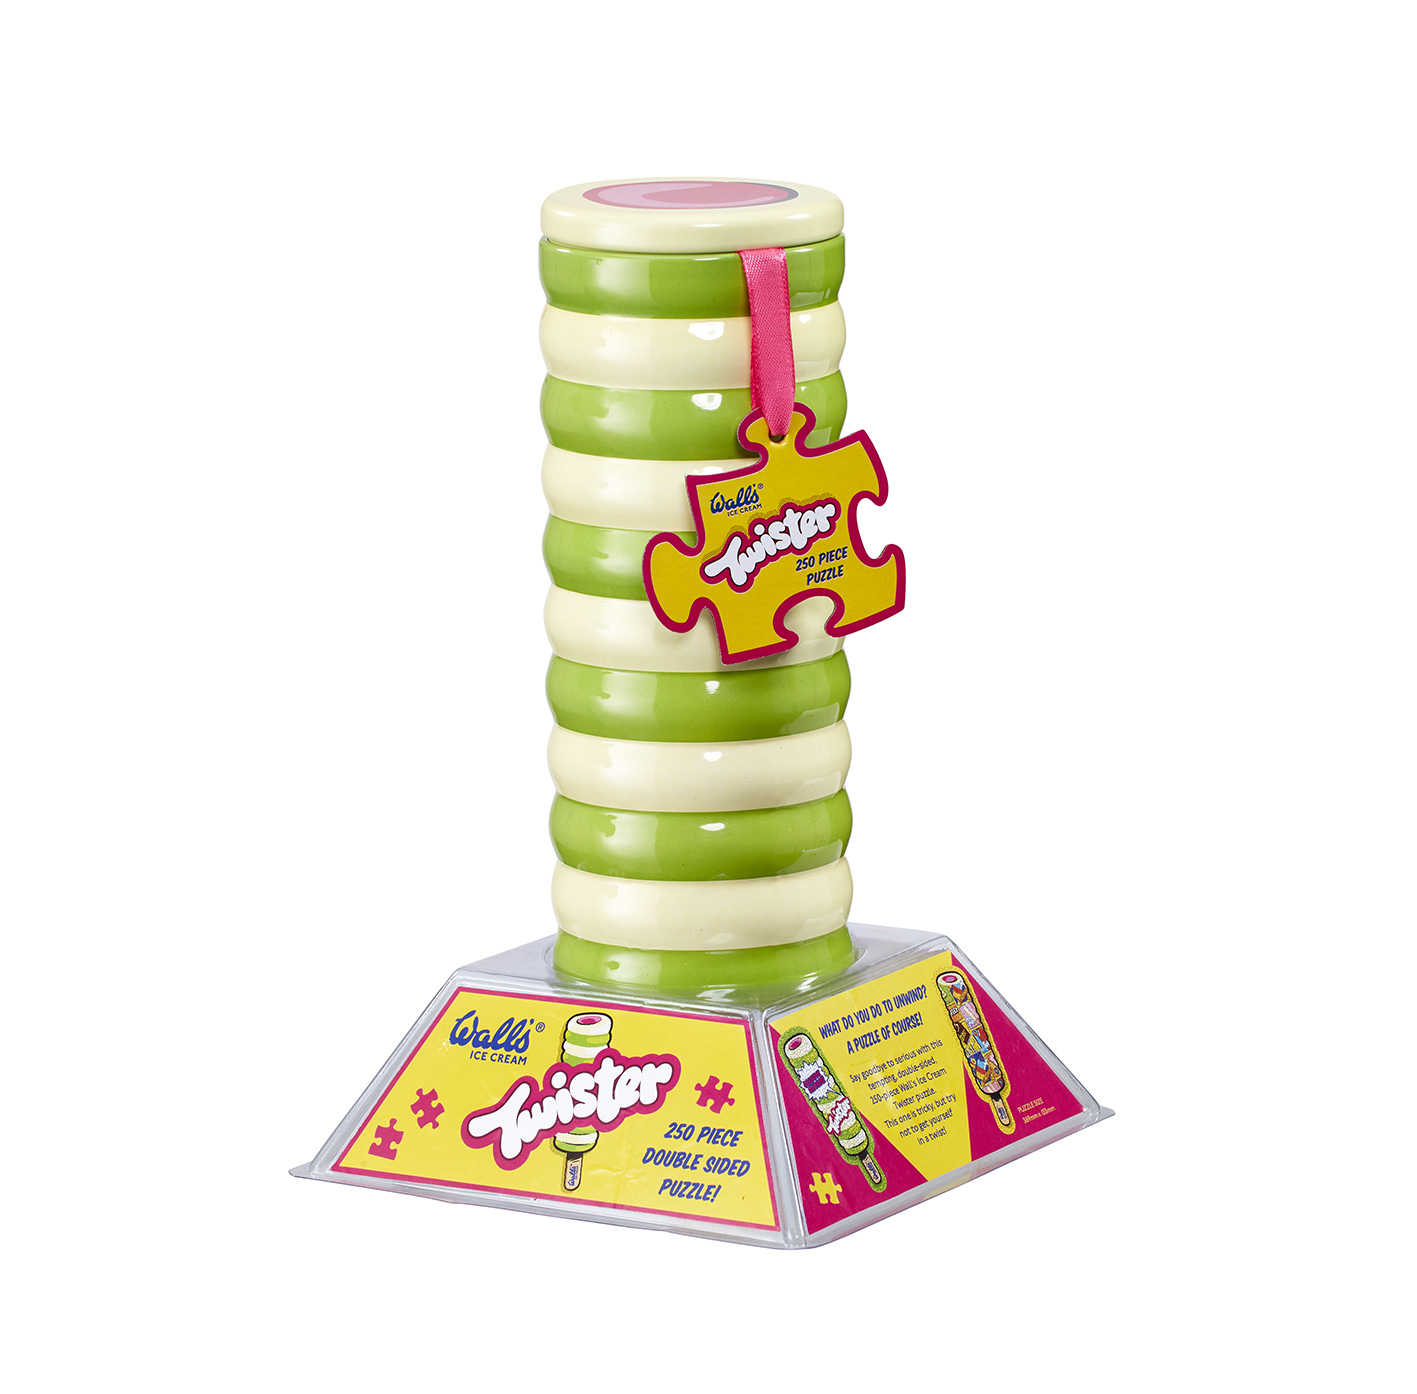 Wall's Twister Ice Cream Jigsaw Puzzle